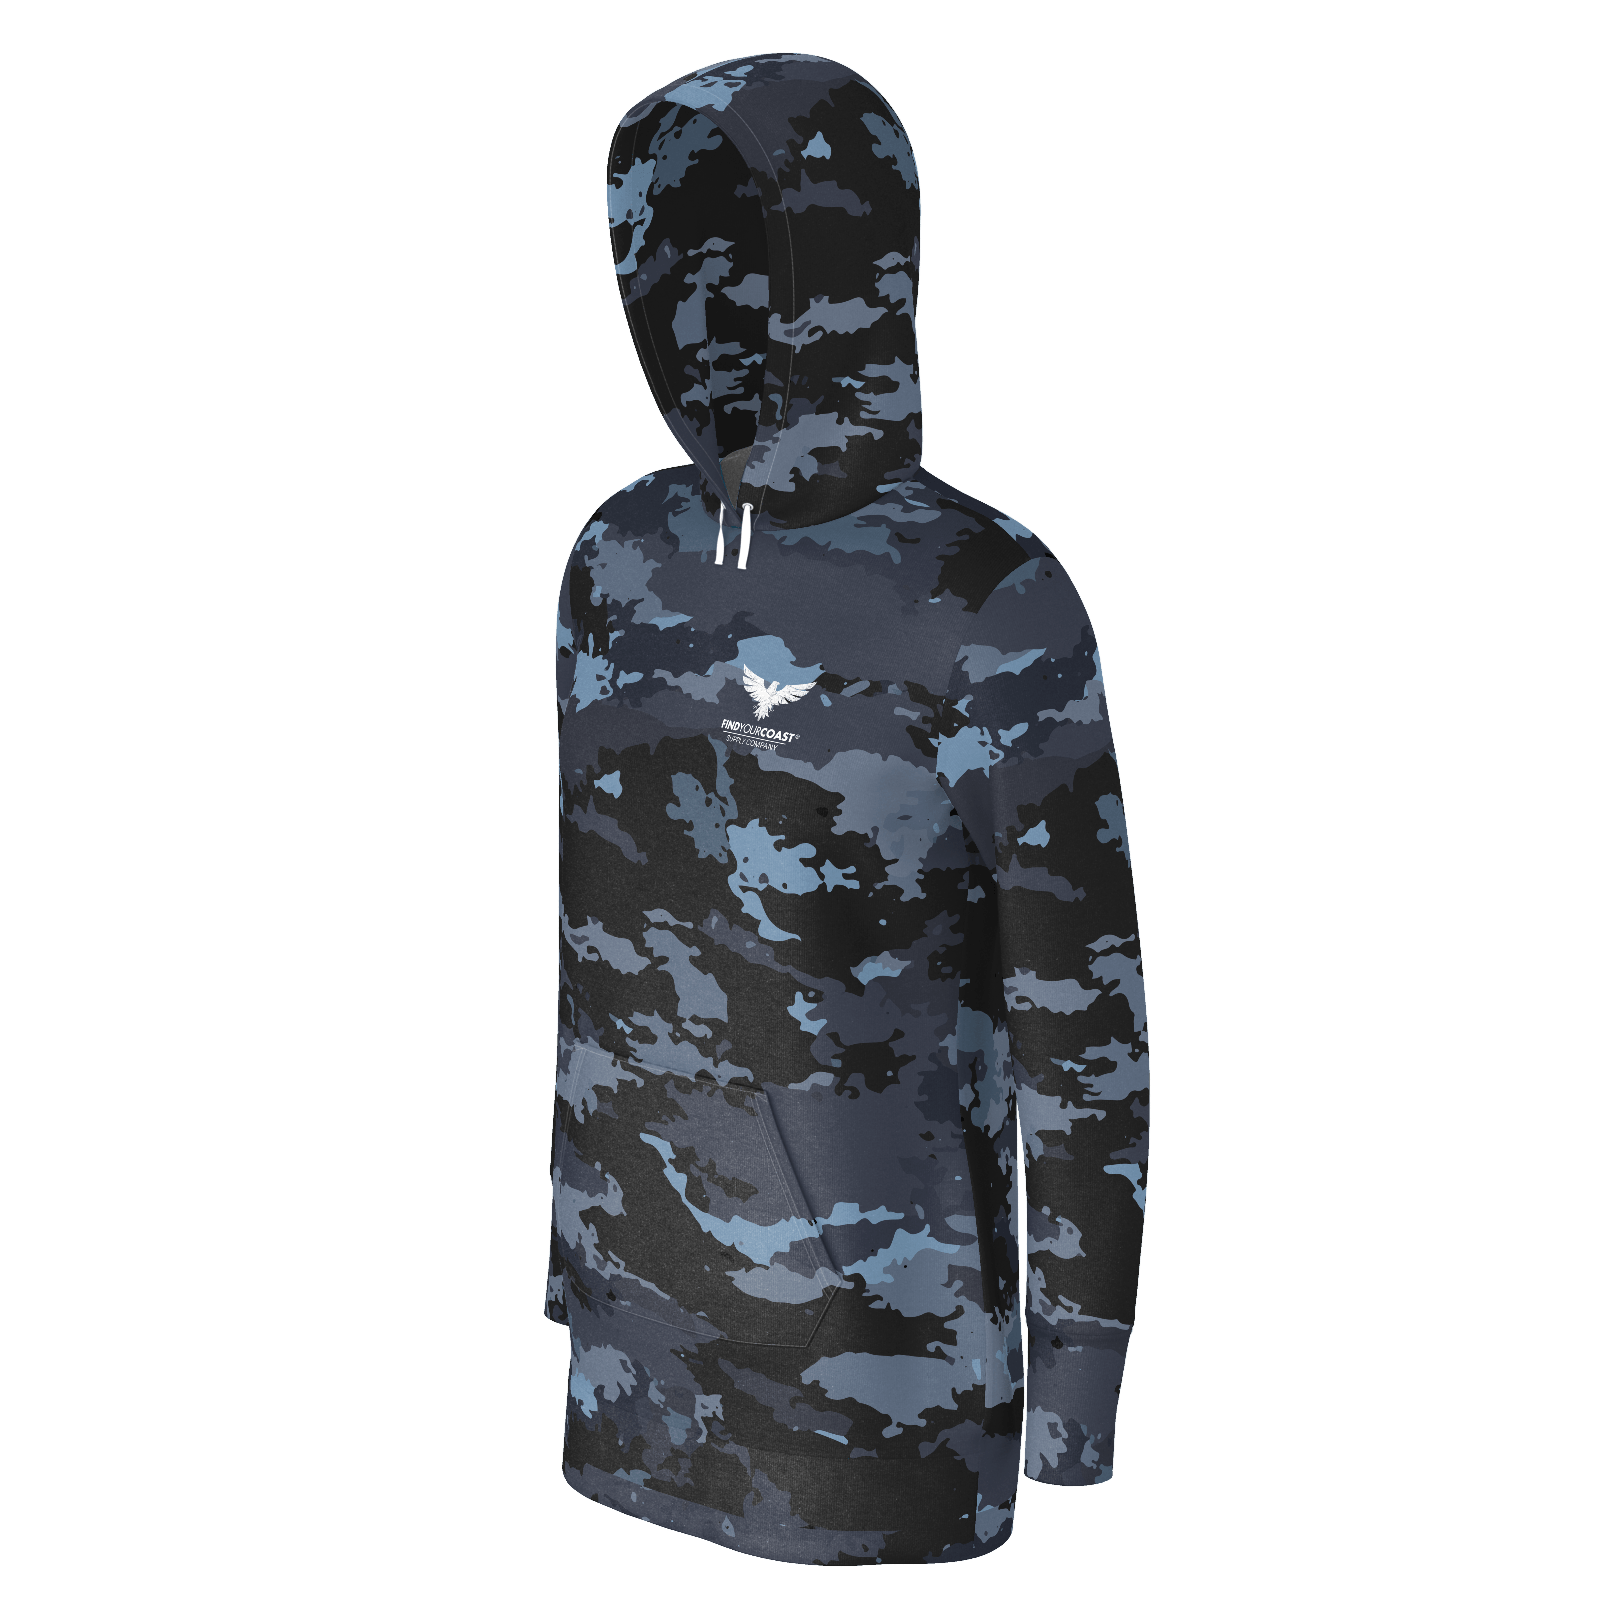 Women's Supply Co. Coast Camo Long Body Sustainable Pacific Coast Pullover Hoodie Dress - Find Your Coast Supply Co.